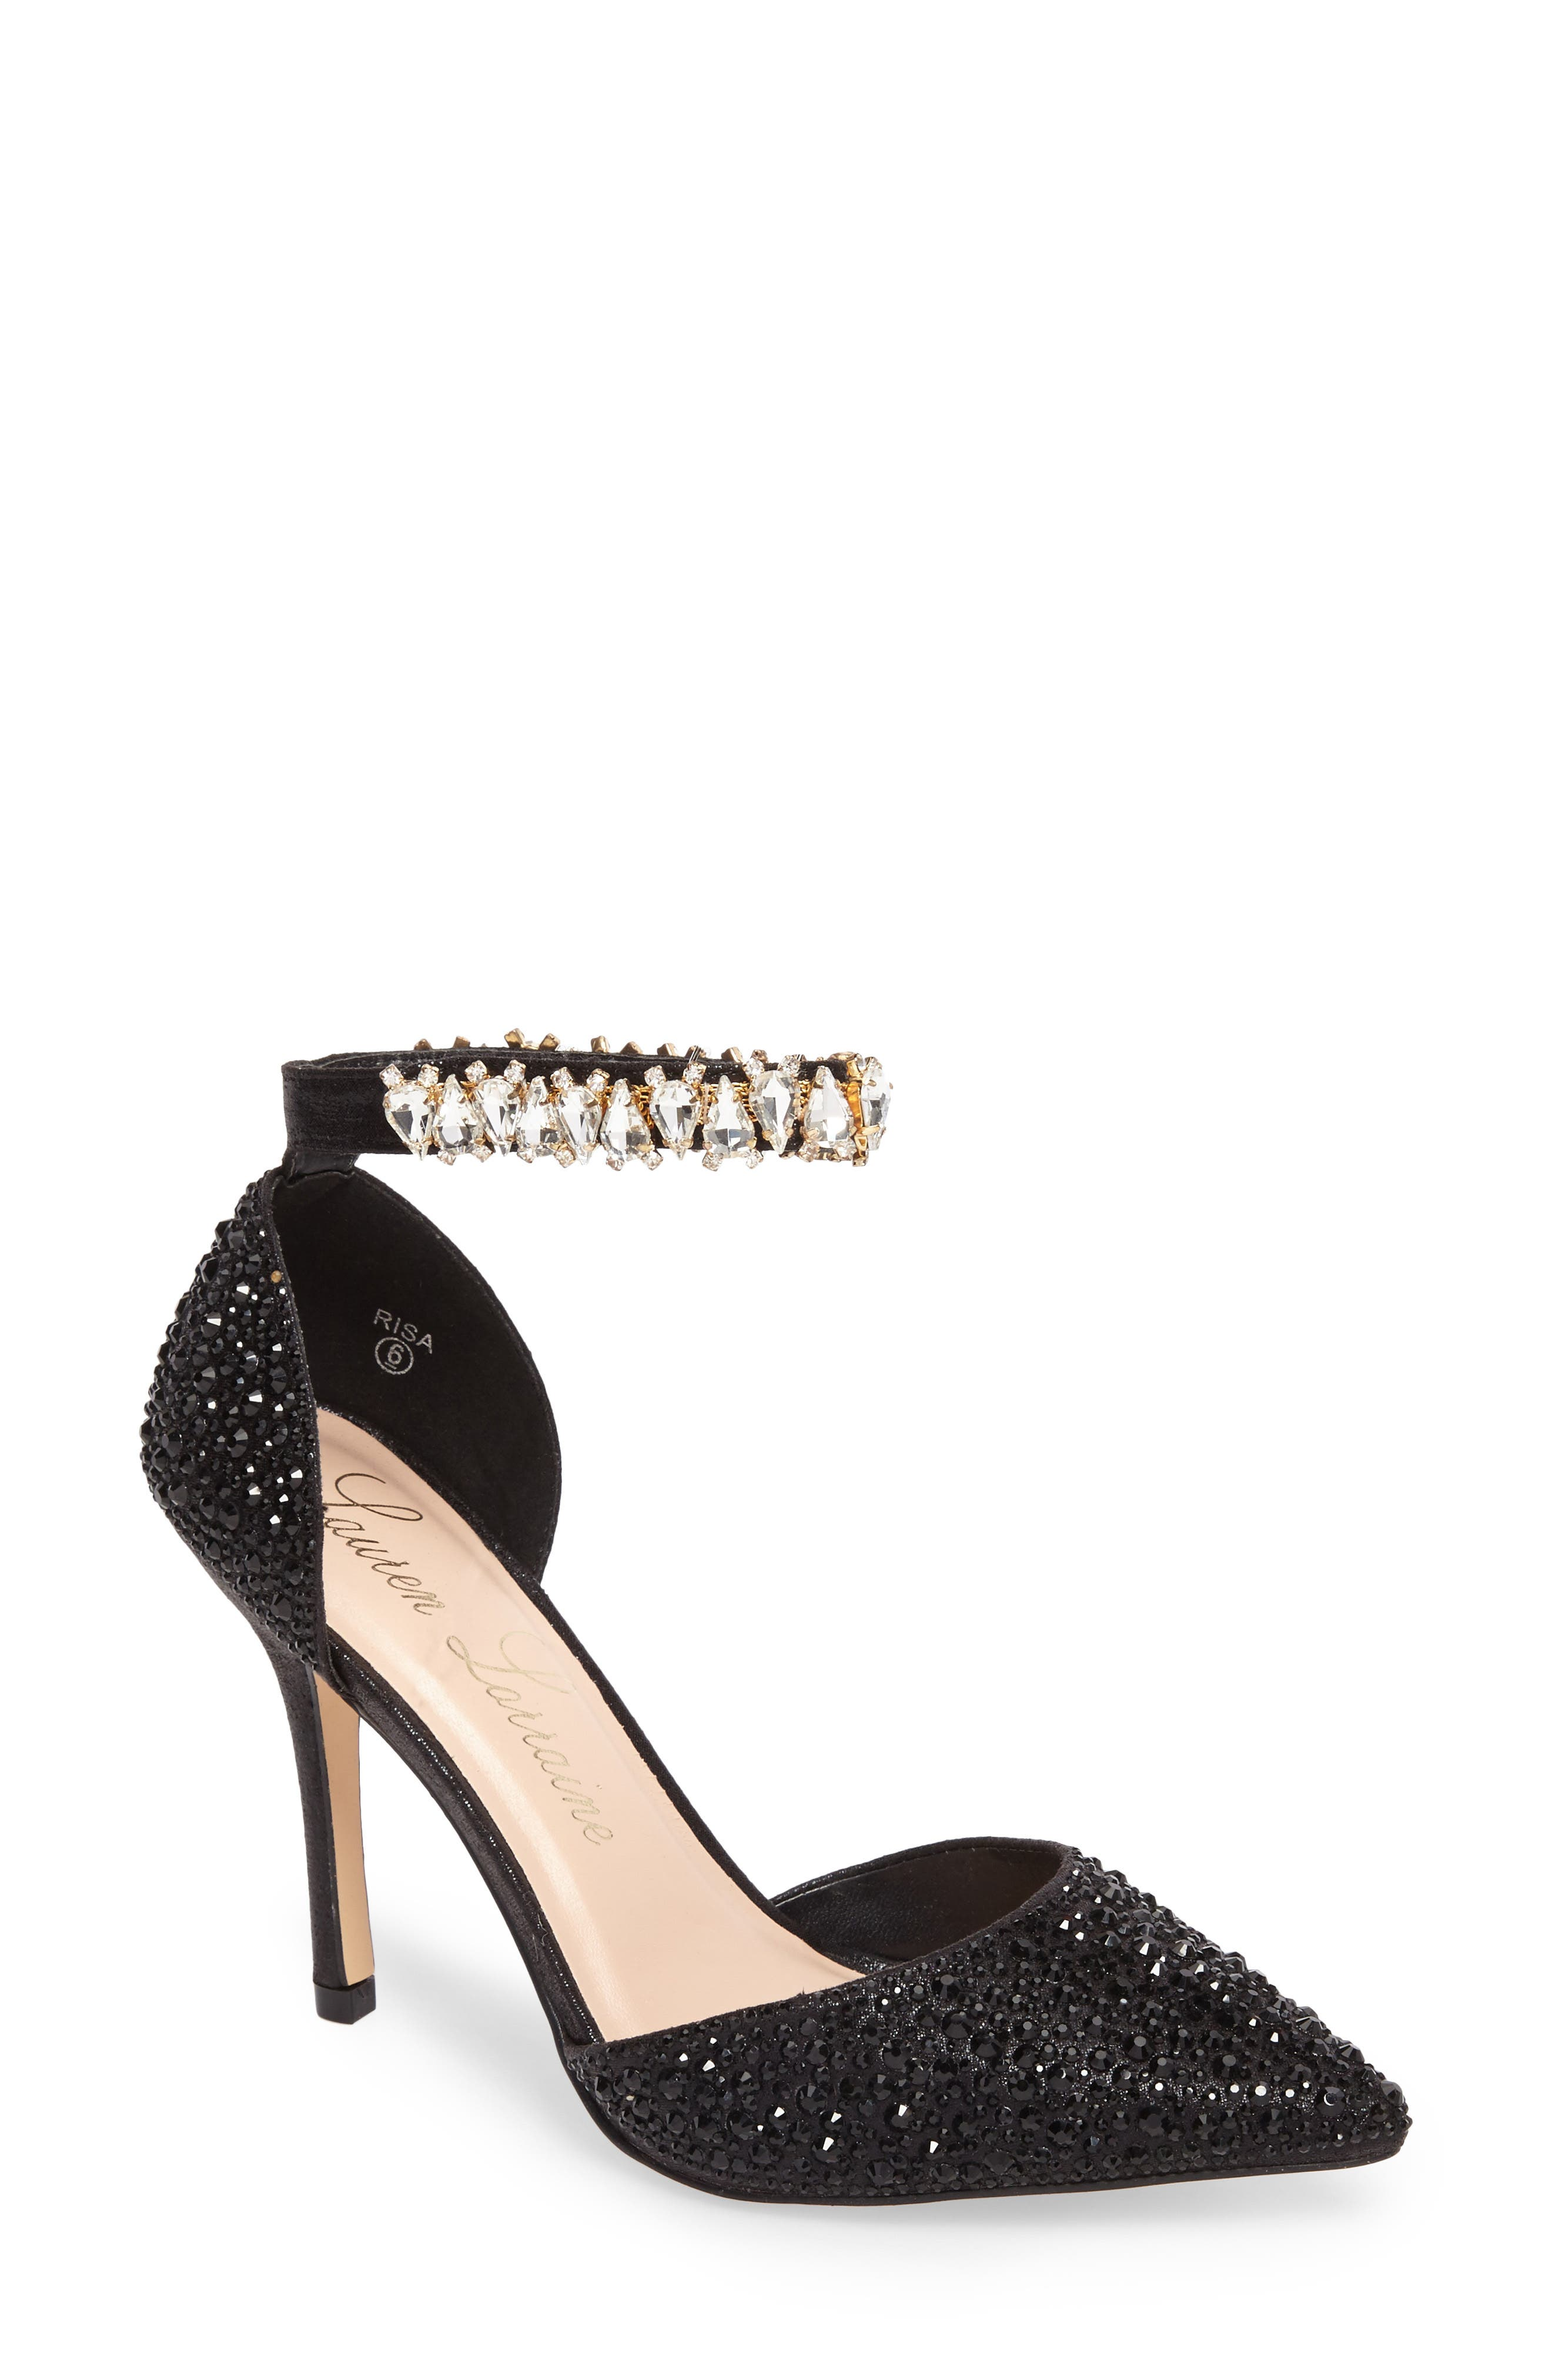 Risa Ankle Strap Pump,                         Main,                         color, Black